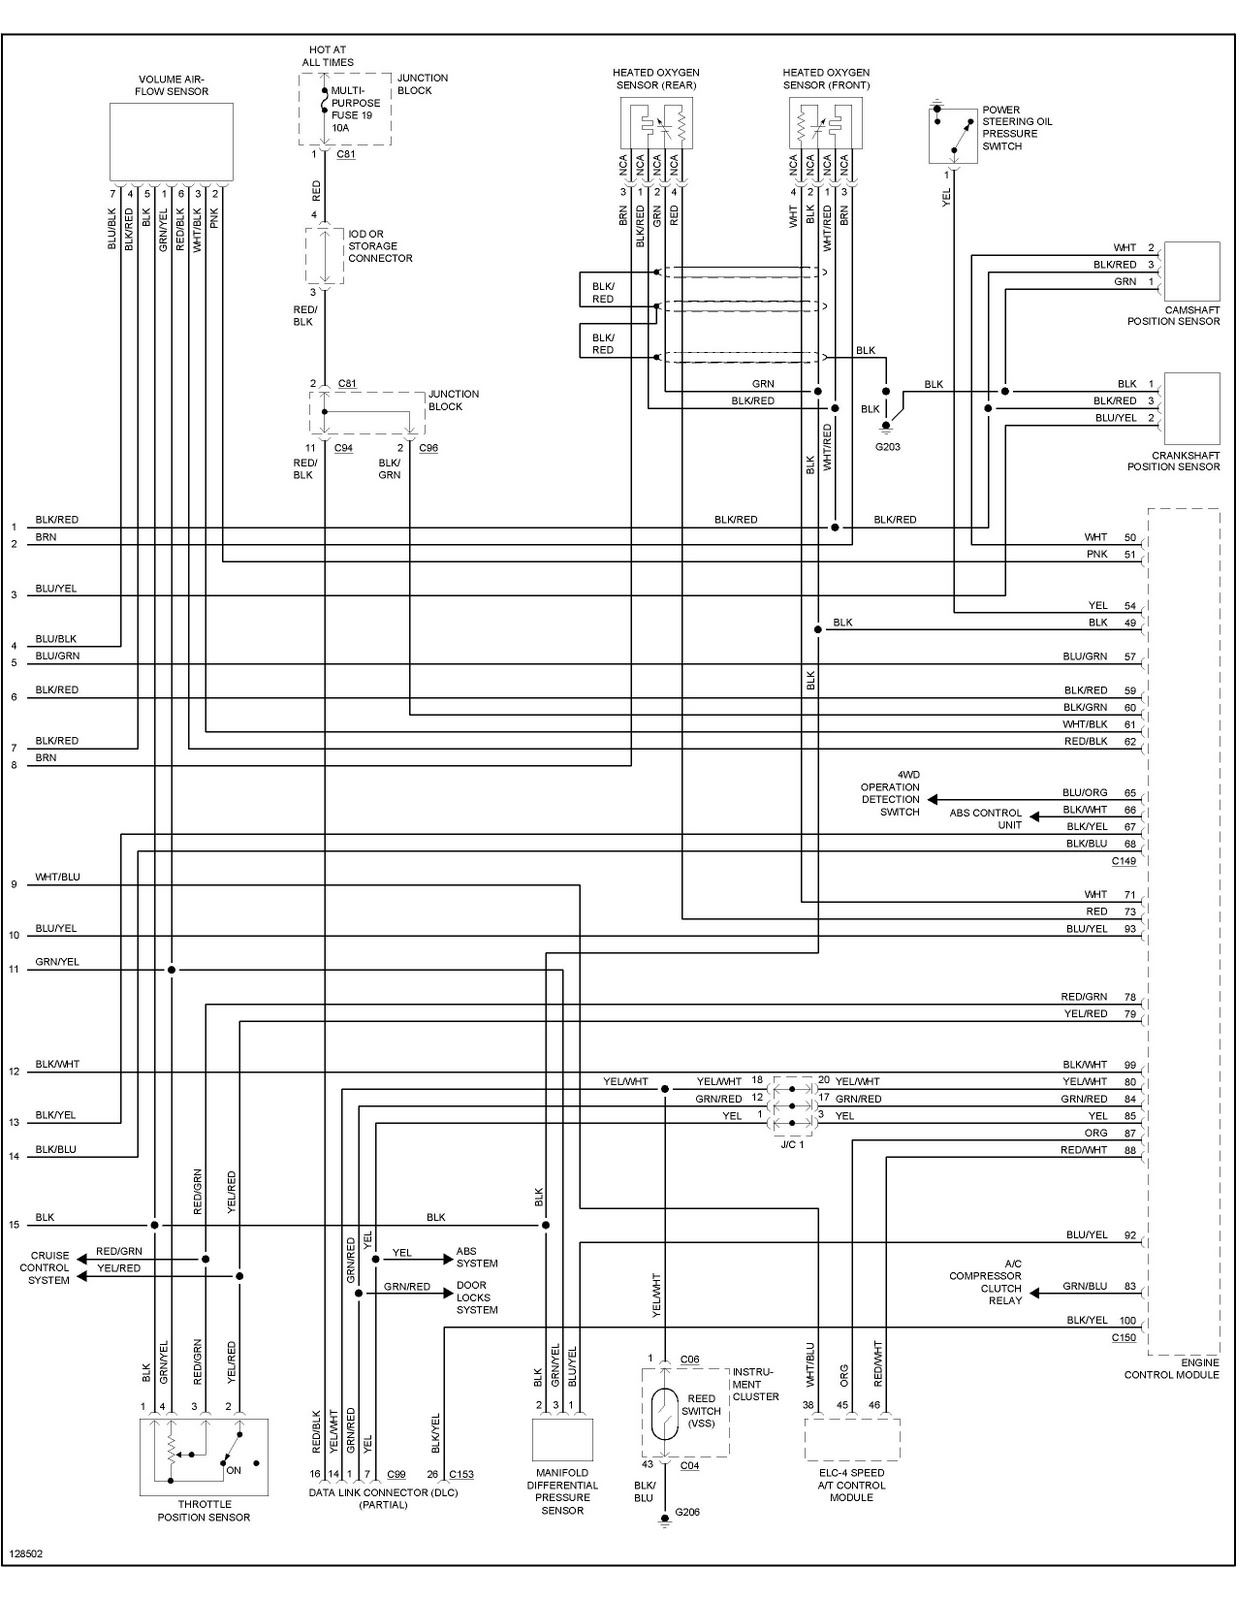 wiring diagram for 2002 mitsubishi montero 1998 mitsubishi 2002 mitsubishi eclipse wiring diagram 2002 mitsubishi eclipse wiring diagram [ 1236 x 1600 Pixel ]